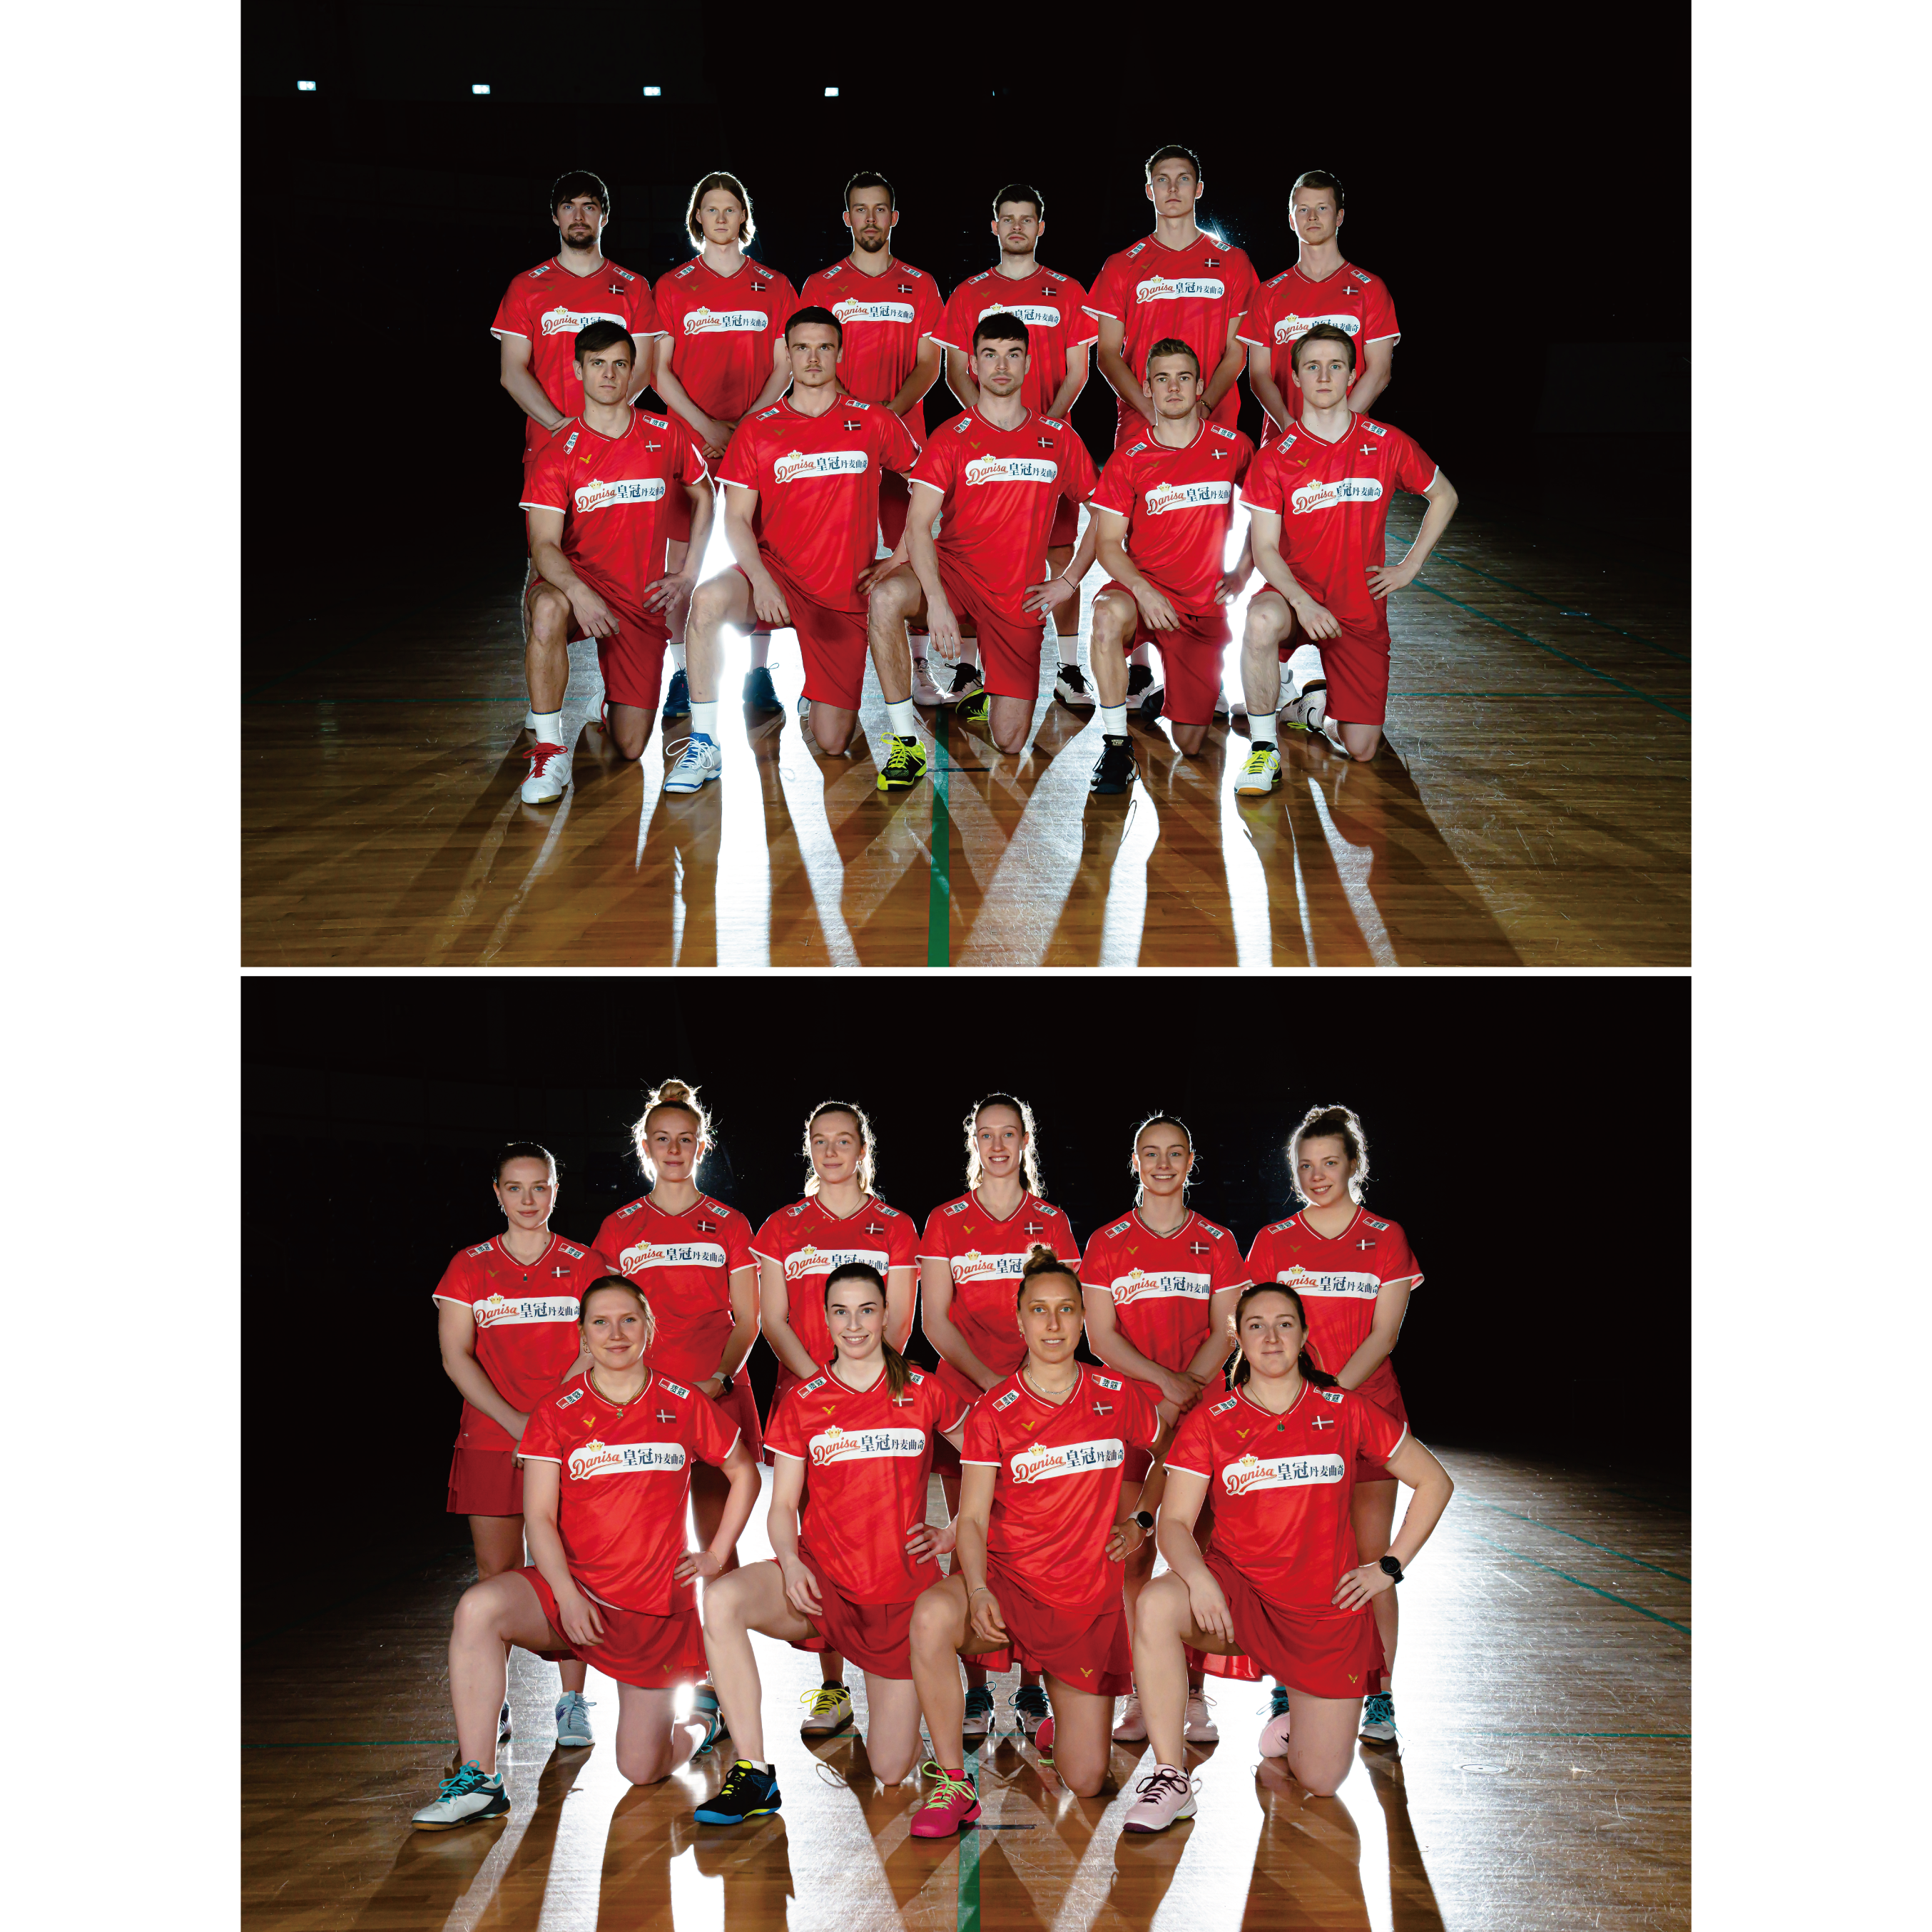 DANISH NATIONAL TEAM